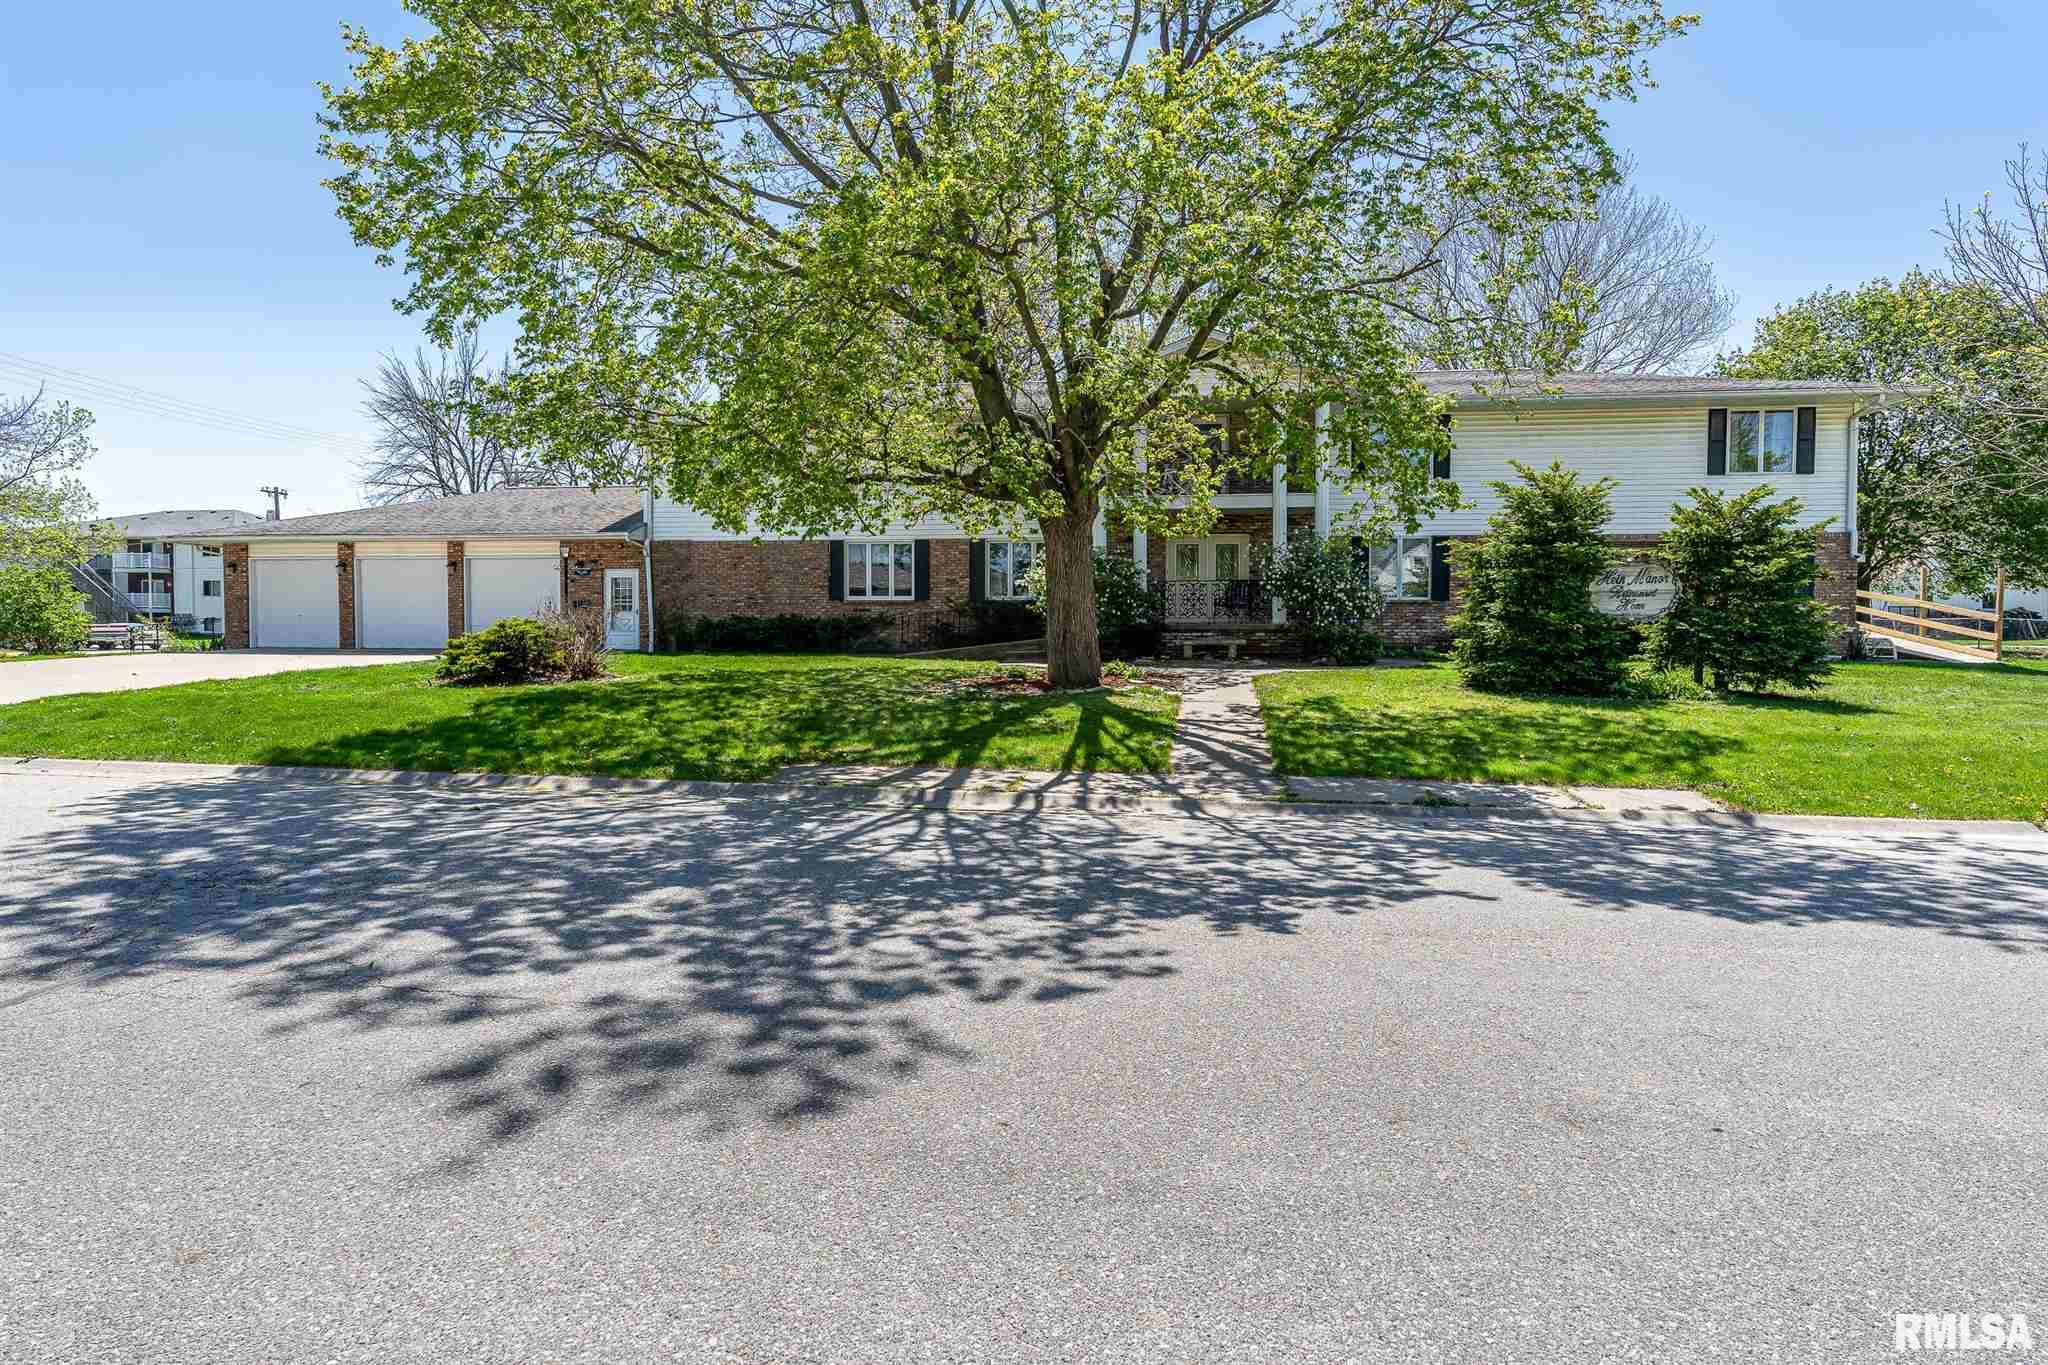 807 3RD Property Photo - Durant, IA real estate listing